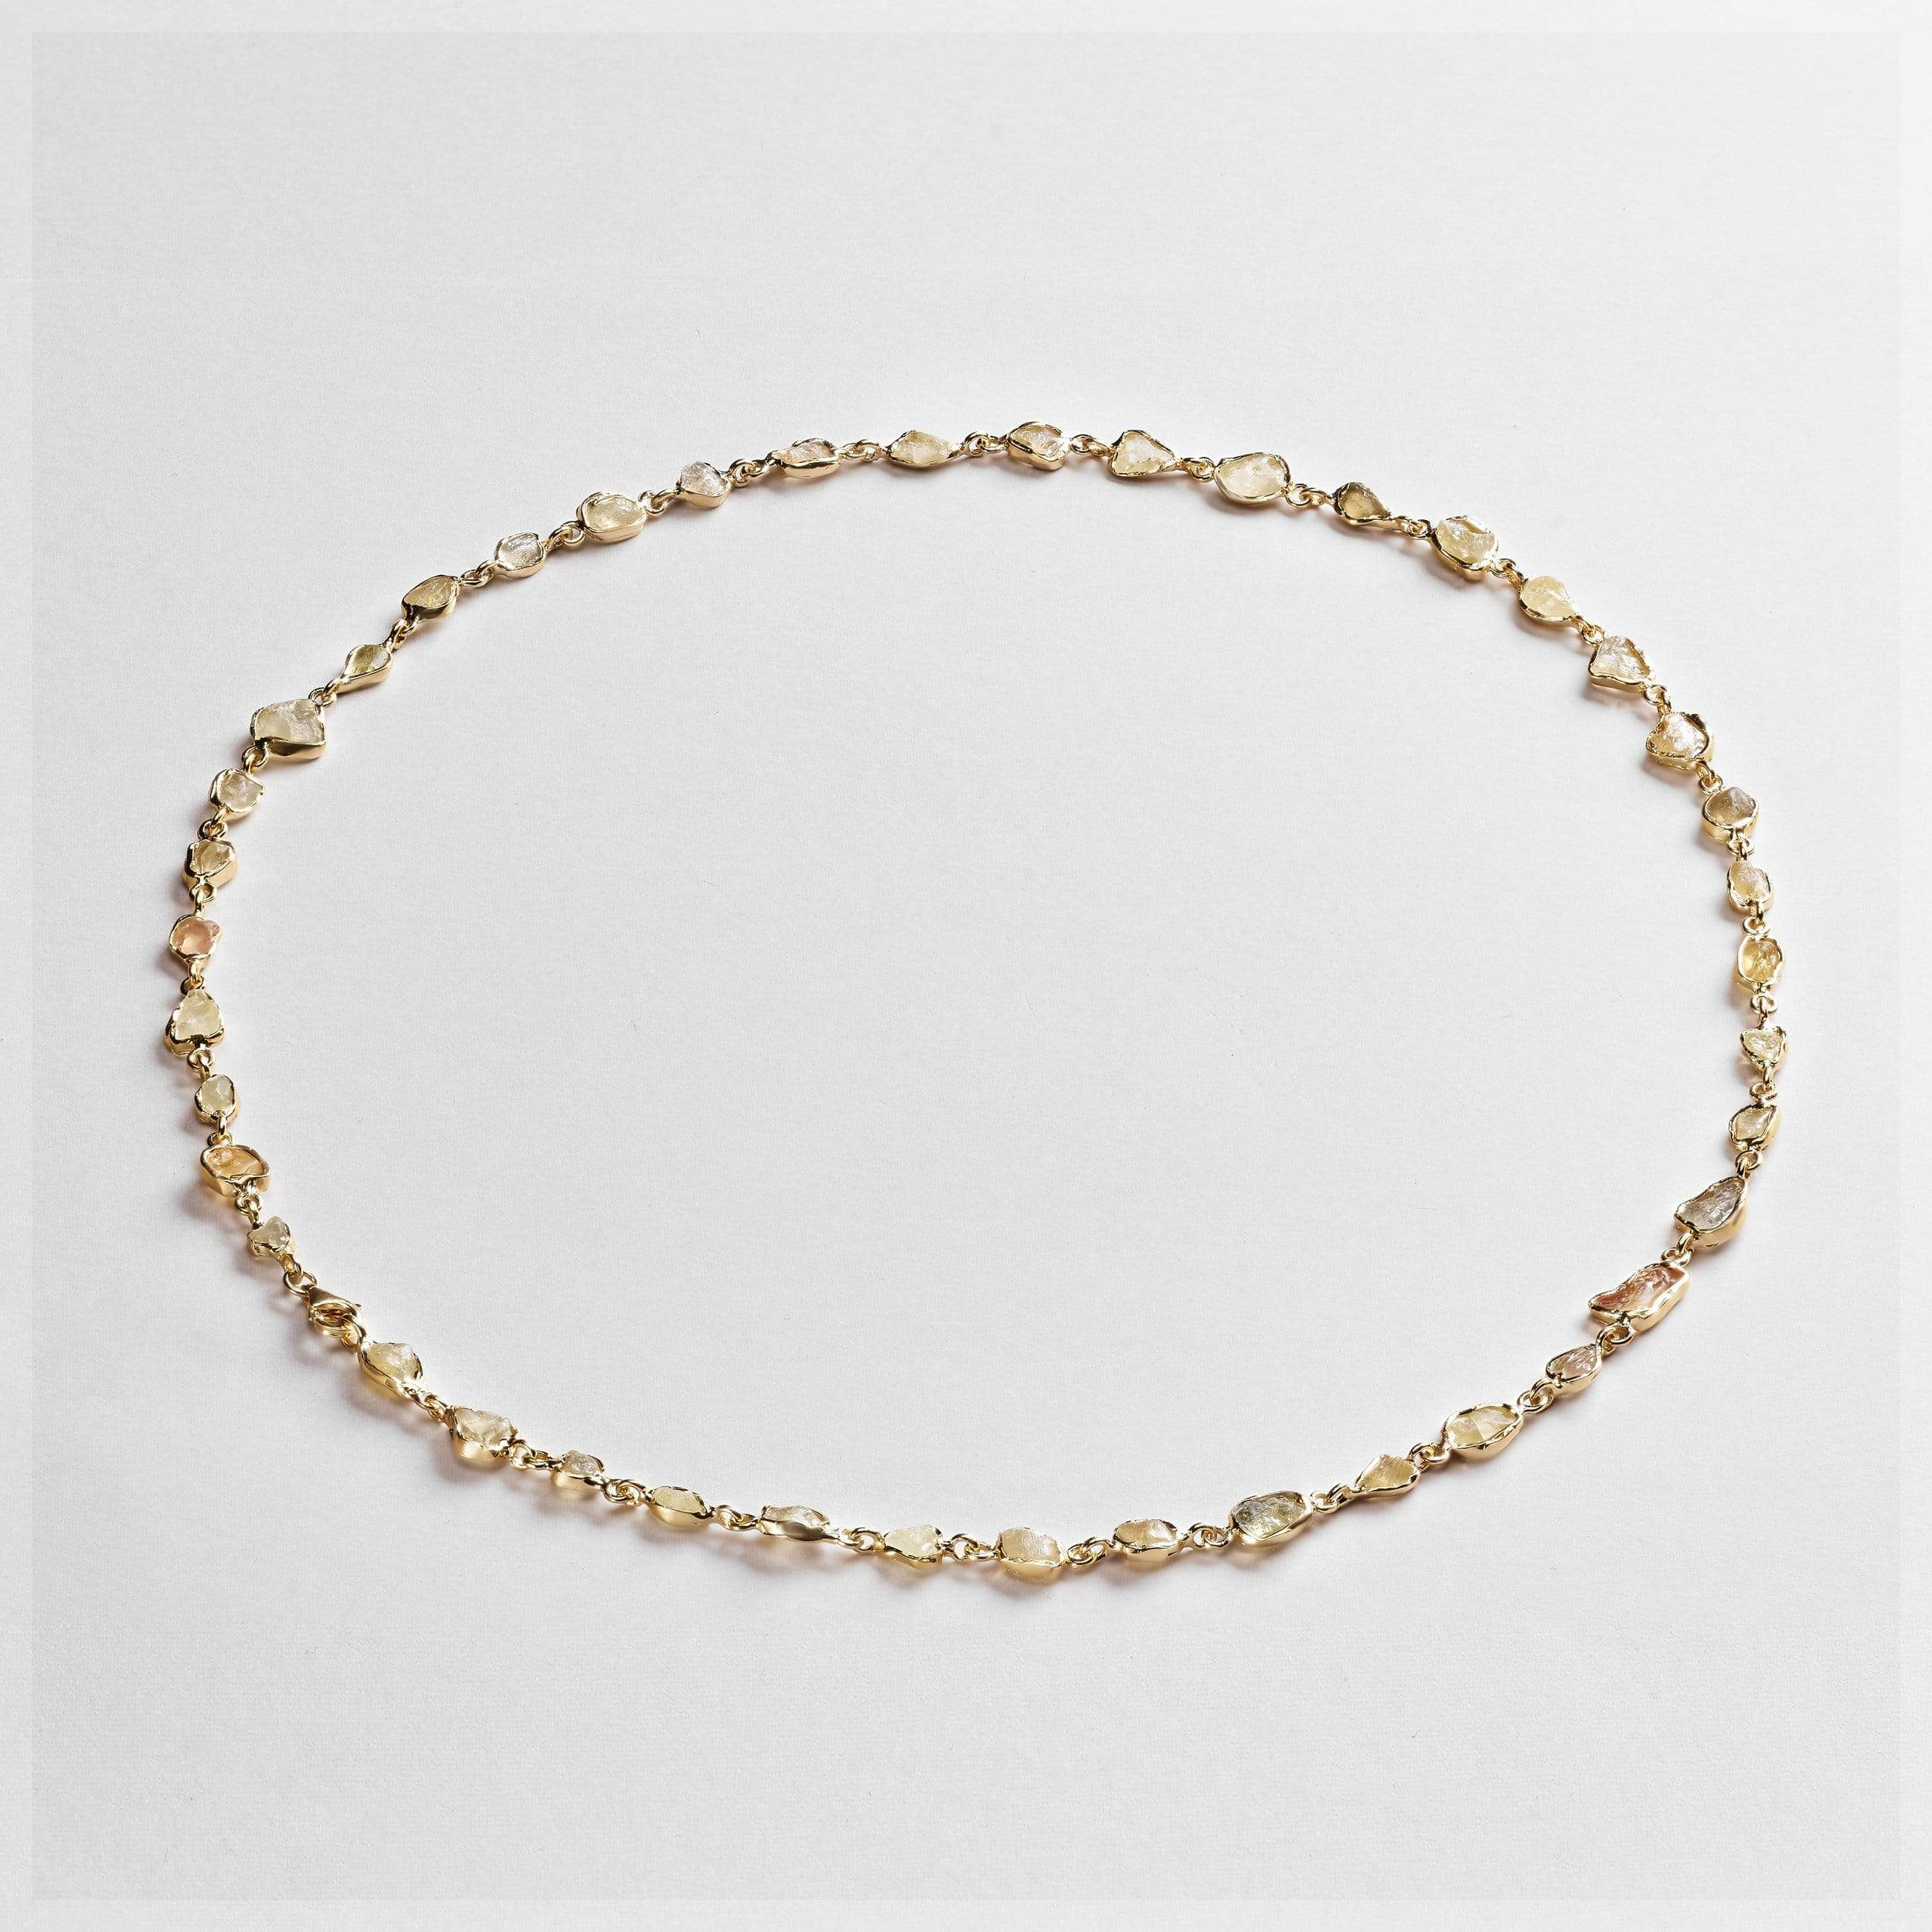 Arista Chrysoberyl Necklace